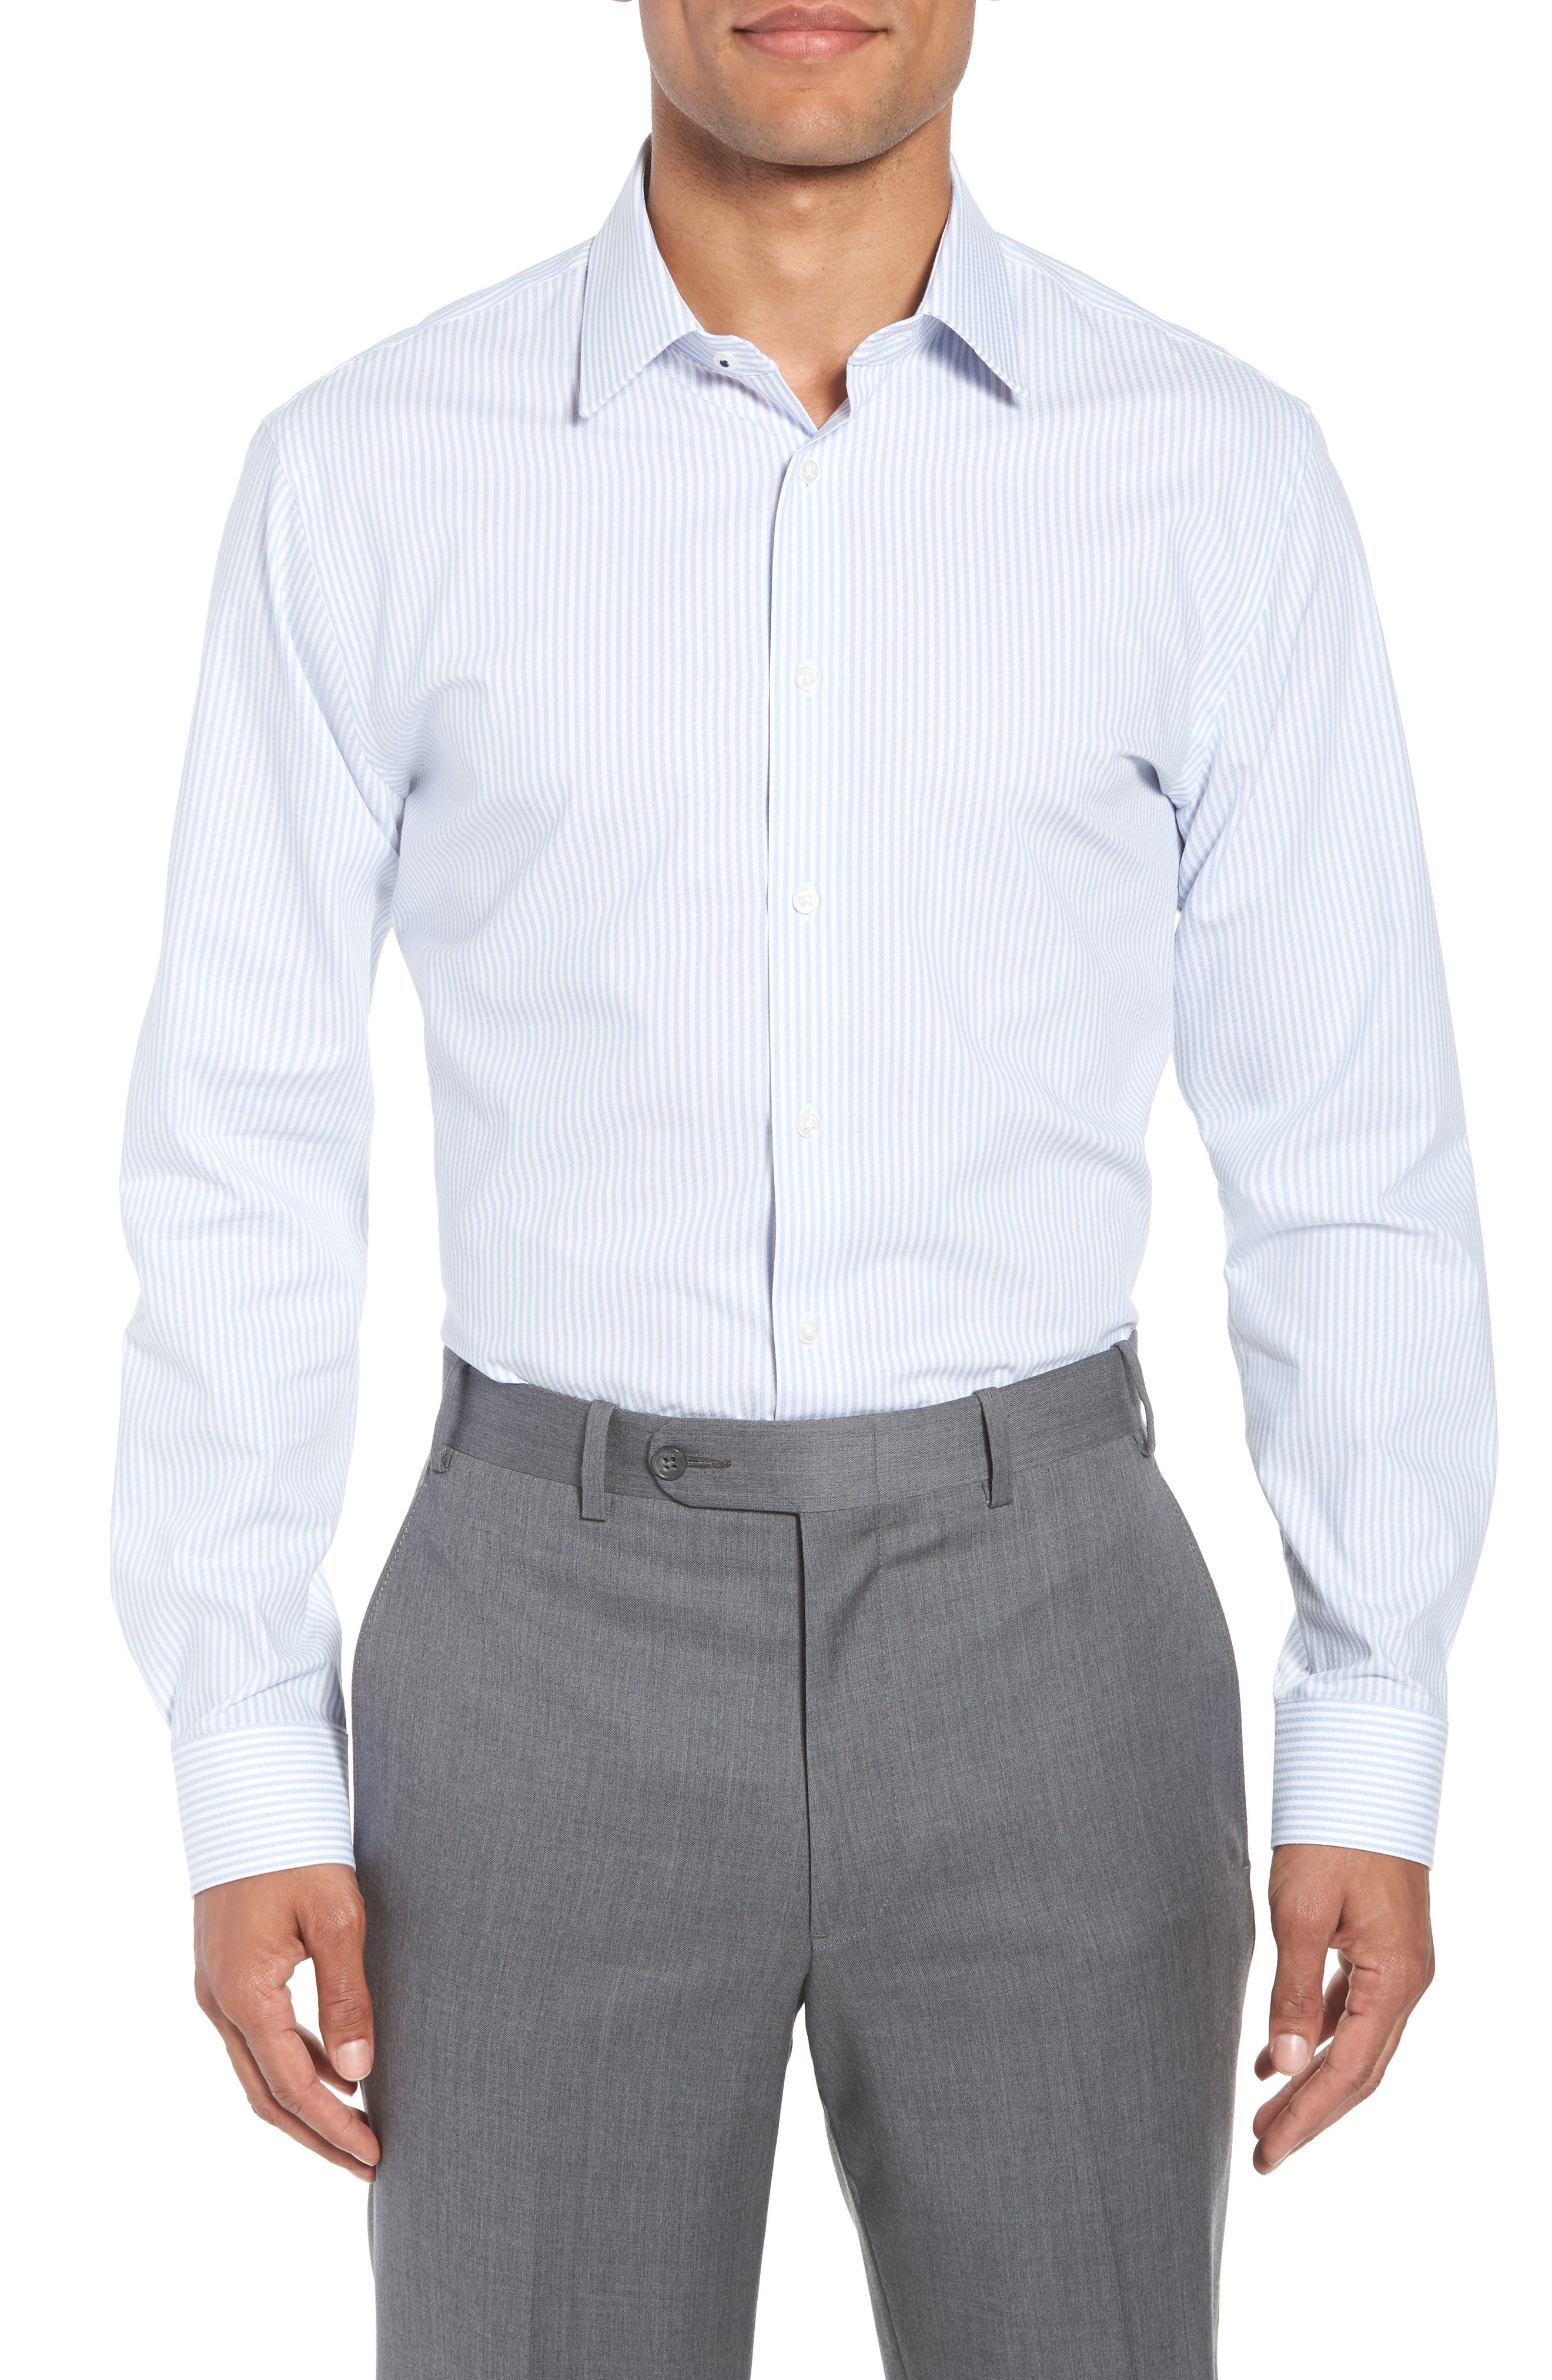 Nordstrom Men's Shop Tech-Smart Trim Fit Stripe Stretch Dress Shirt